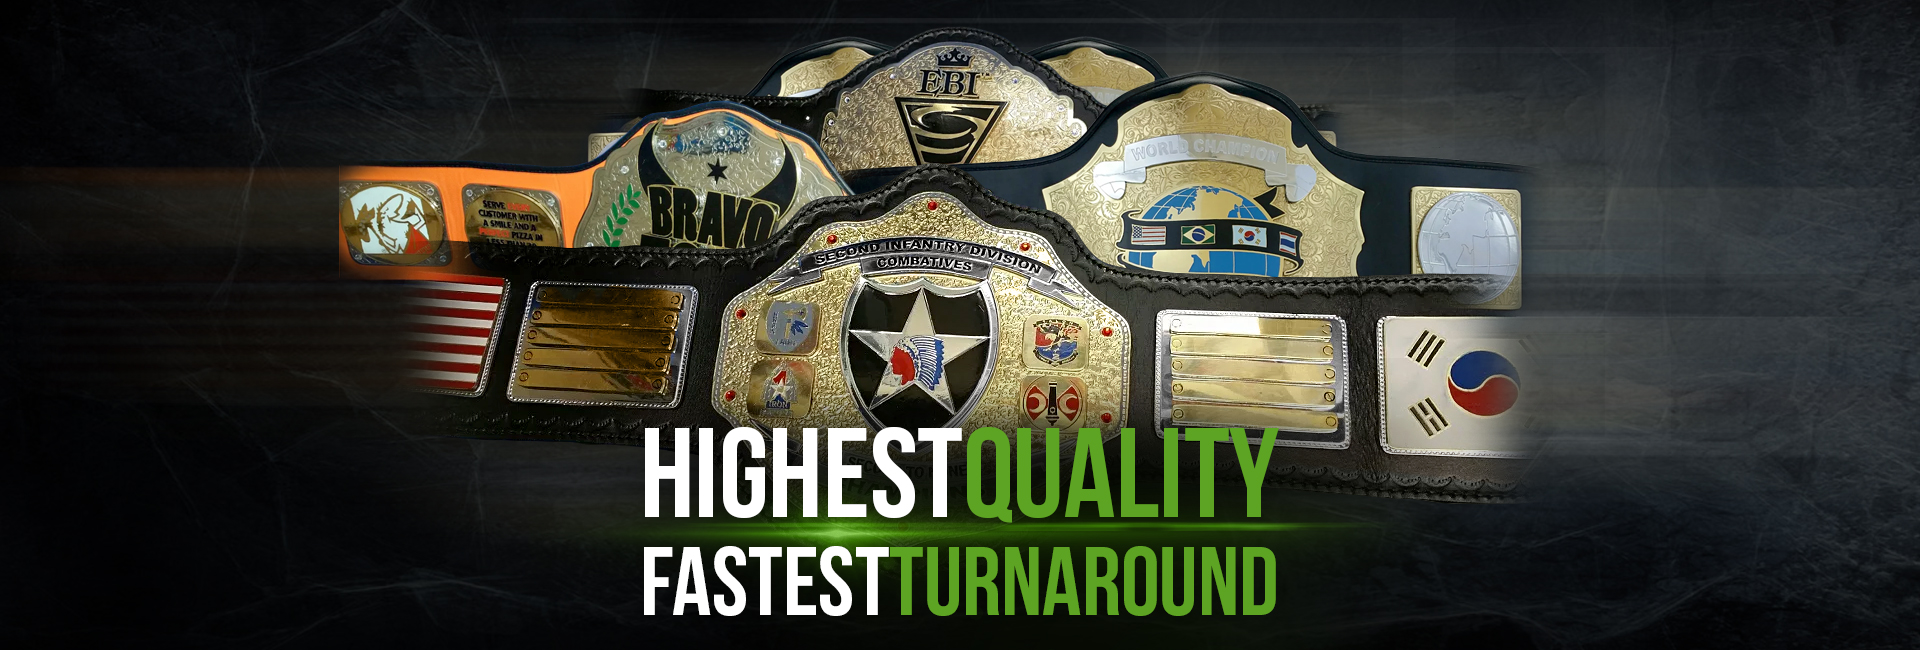 ProAmBelts offers the highest quality and fastest turnaround on all custom championship belts!